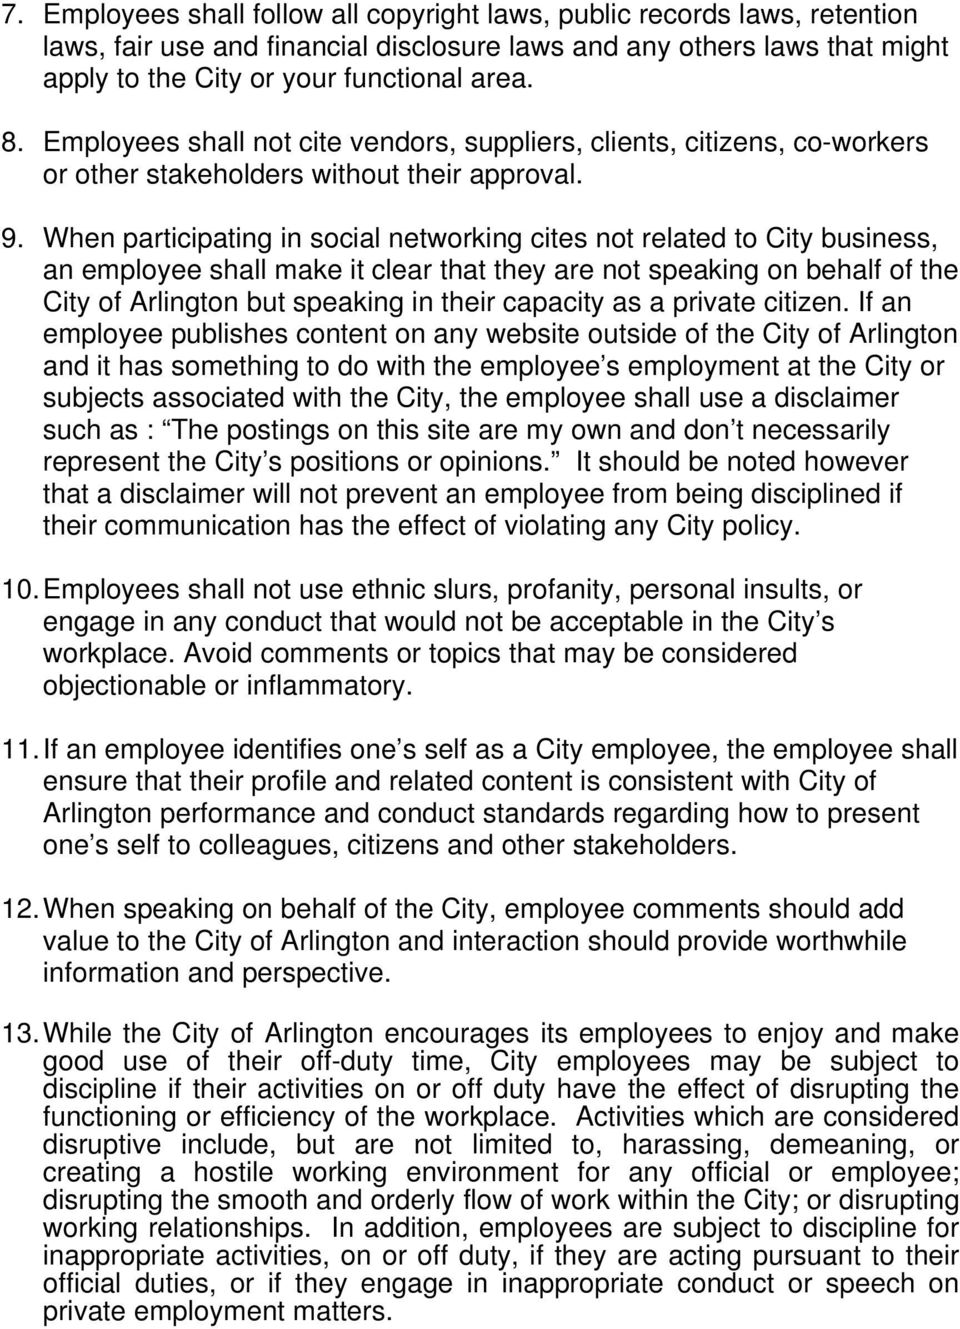 When participating in social networking cites not related to City business, an employee shall make it clear that they are not speaking on behalf of the City of Arlington but speaking in their